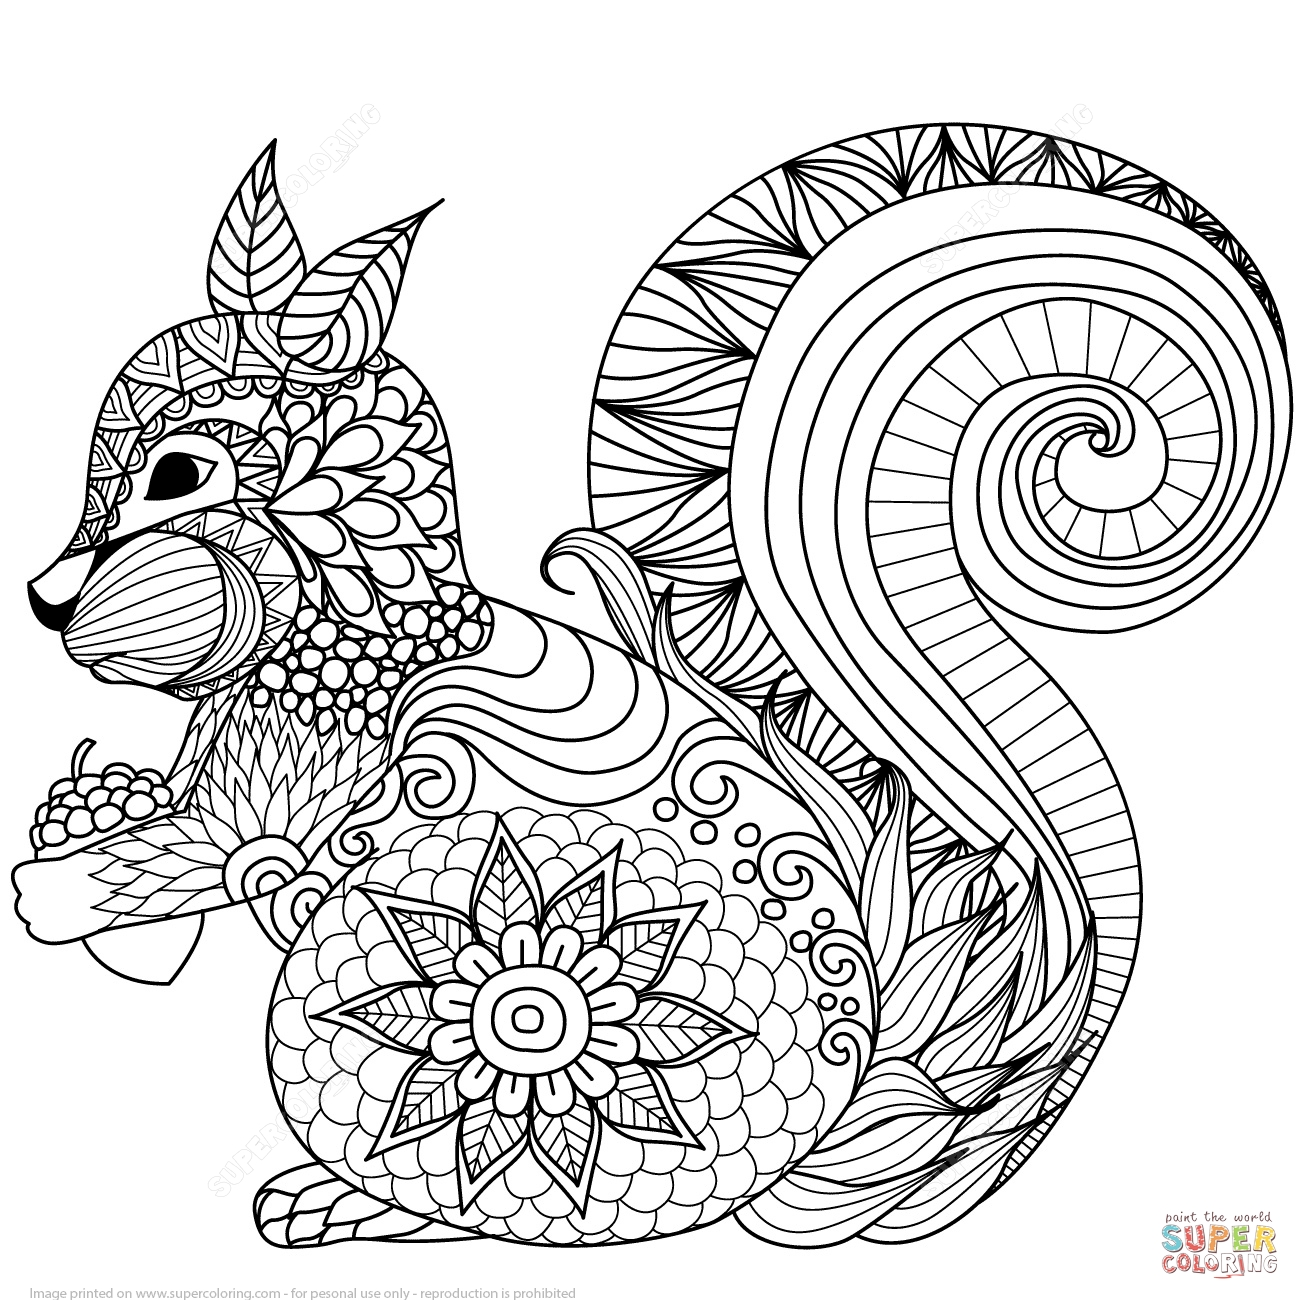 zentangle coloring pages - zentangle coloring pages